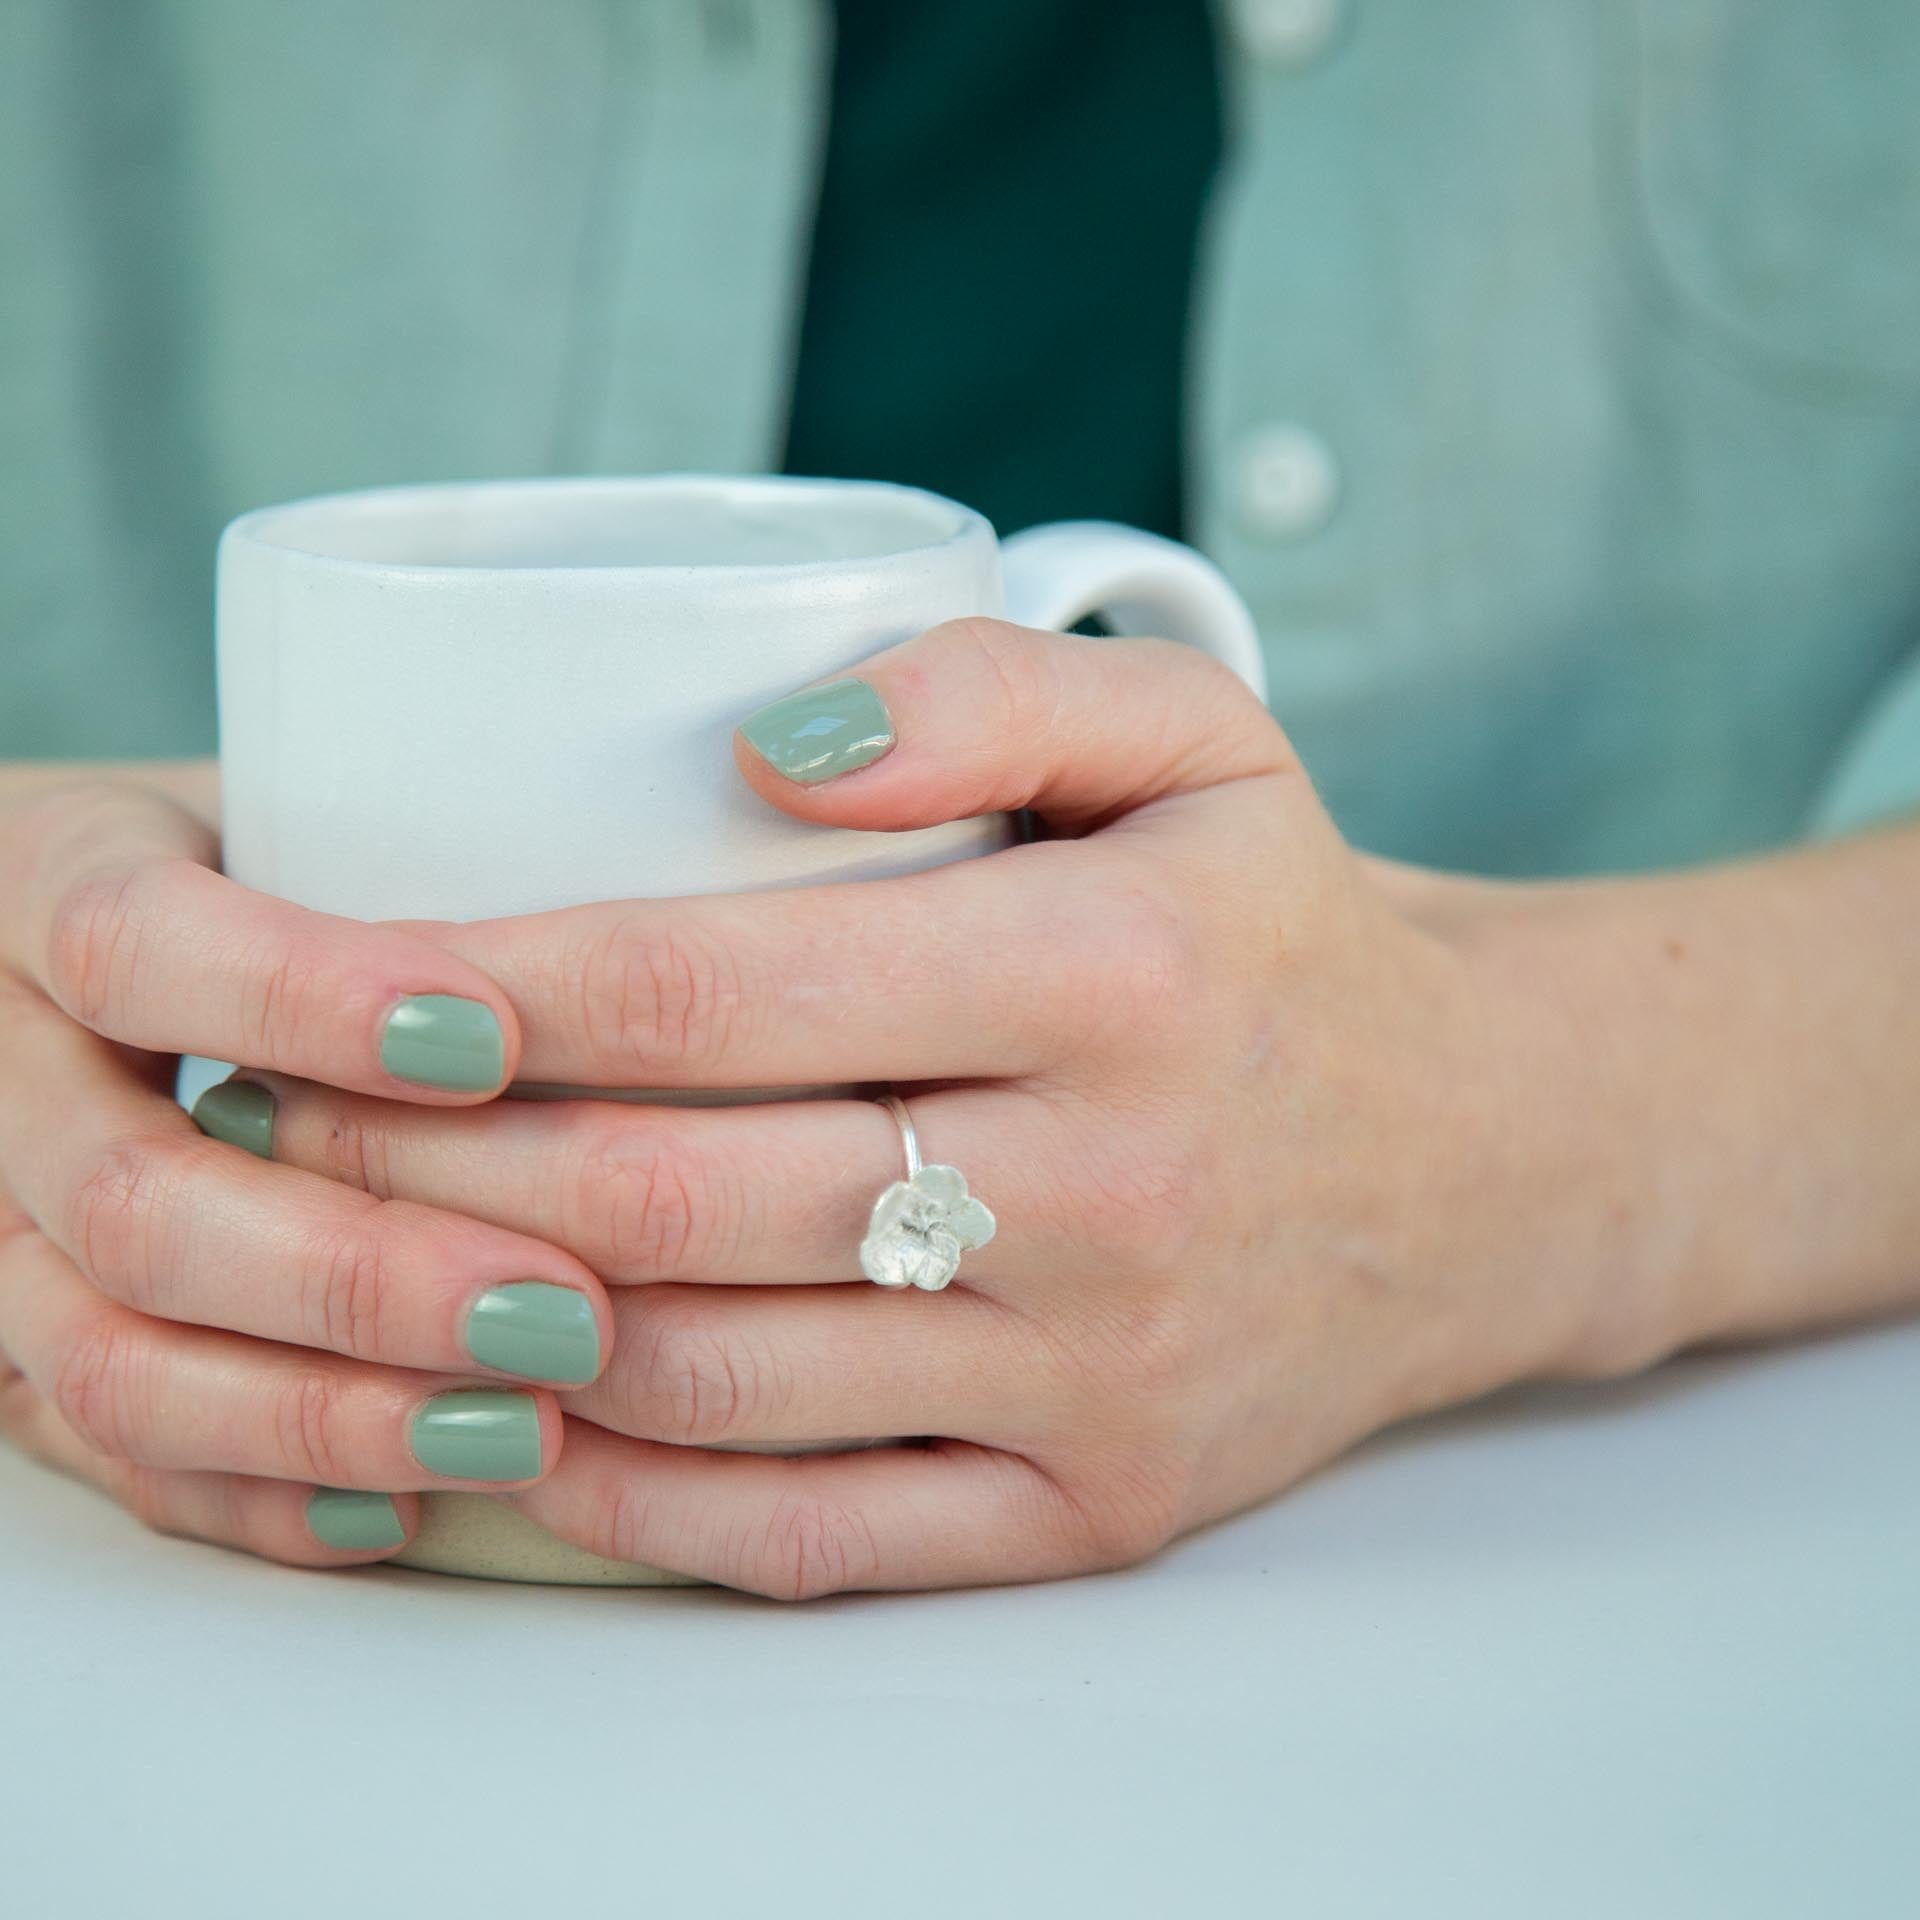 hands holding mug with silver flower ring